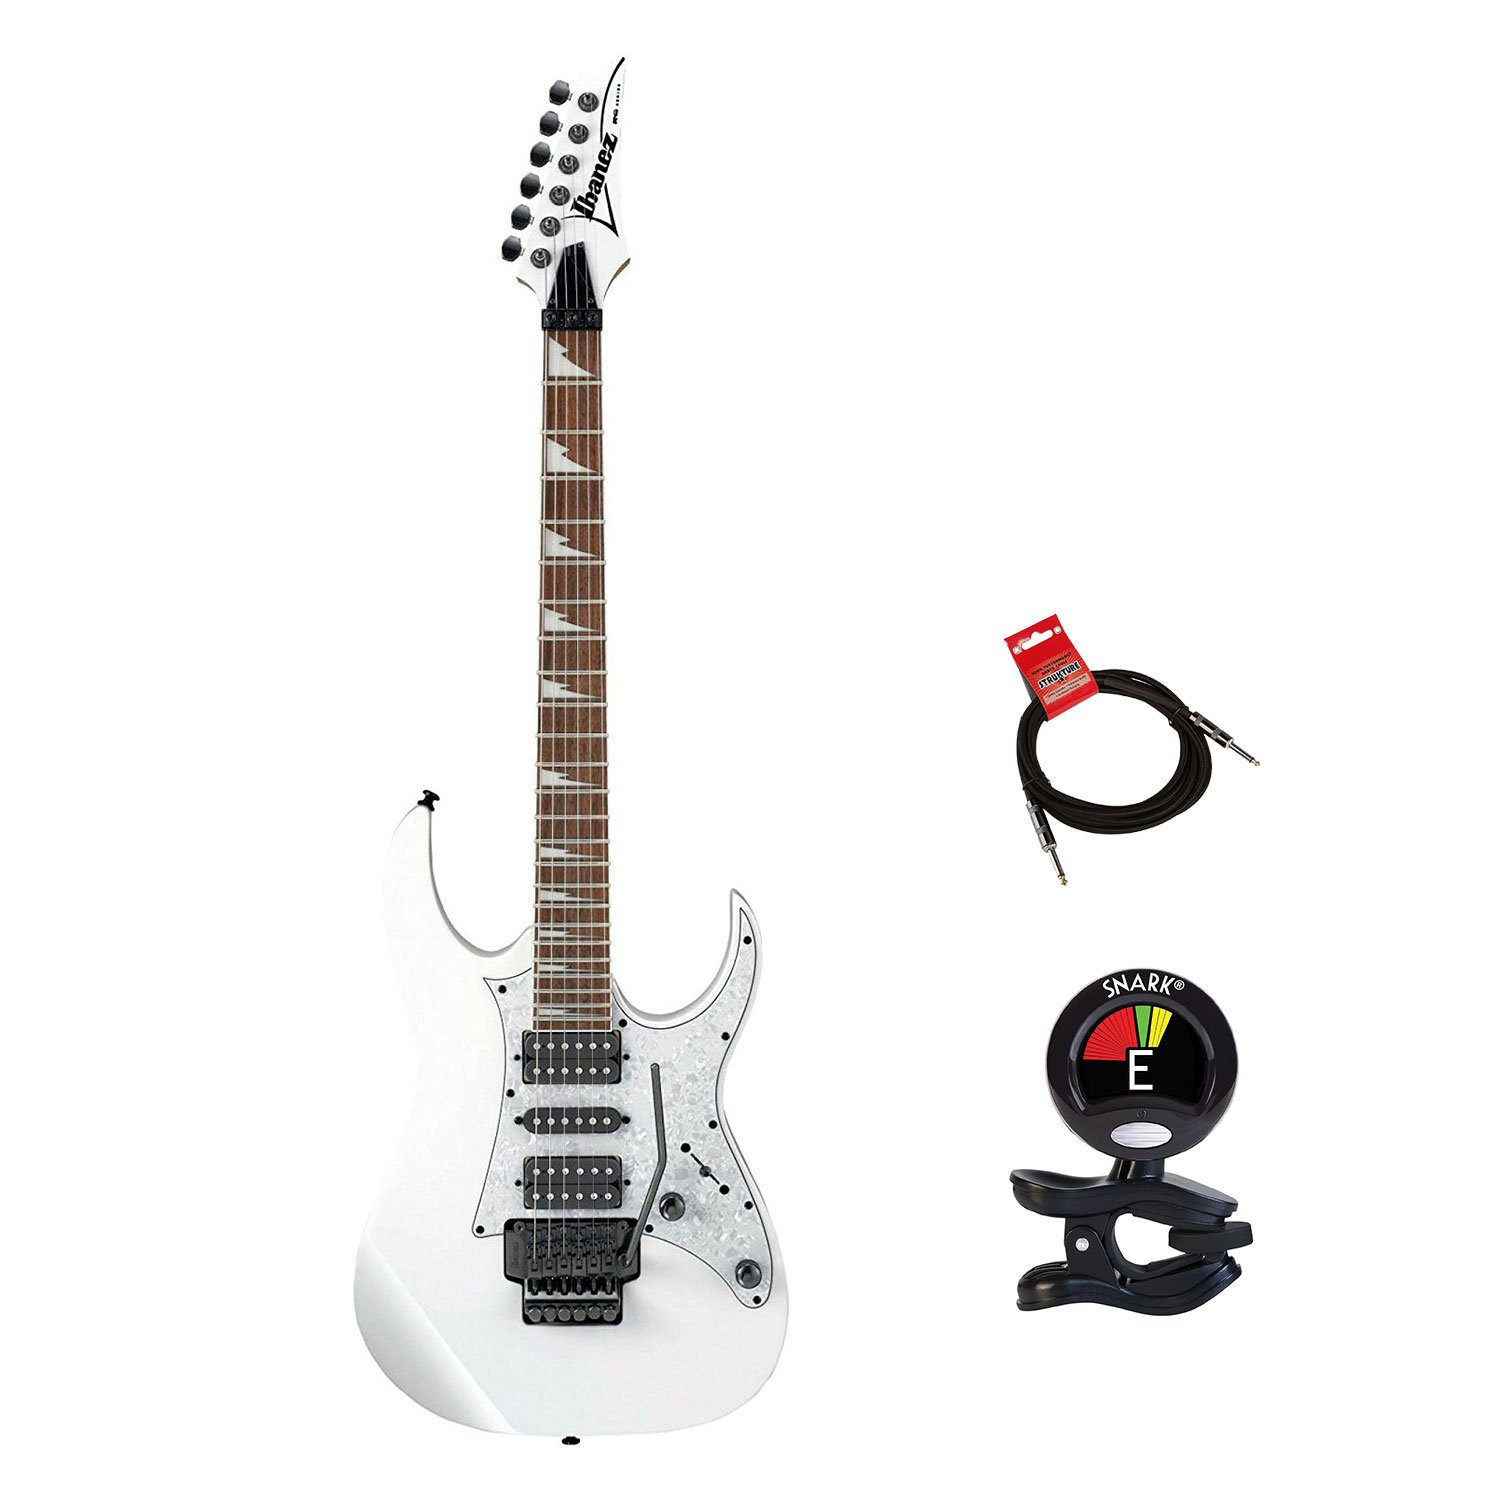 Ibanez Rg450dxbwh Rg Electric Guitar Bundle In White Jackson Js22 7 Wire Diagram Color With Guitars Clip On Tuner And Instrument Cable Kit Accessories